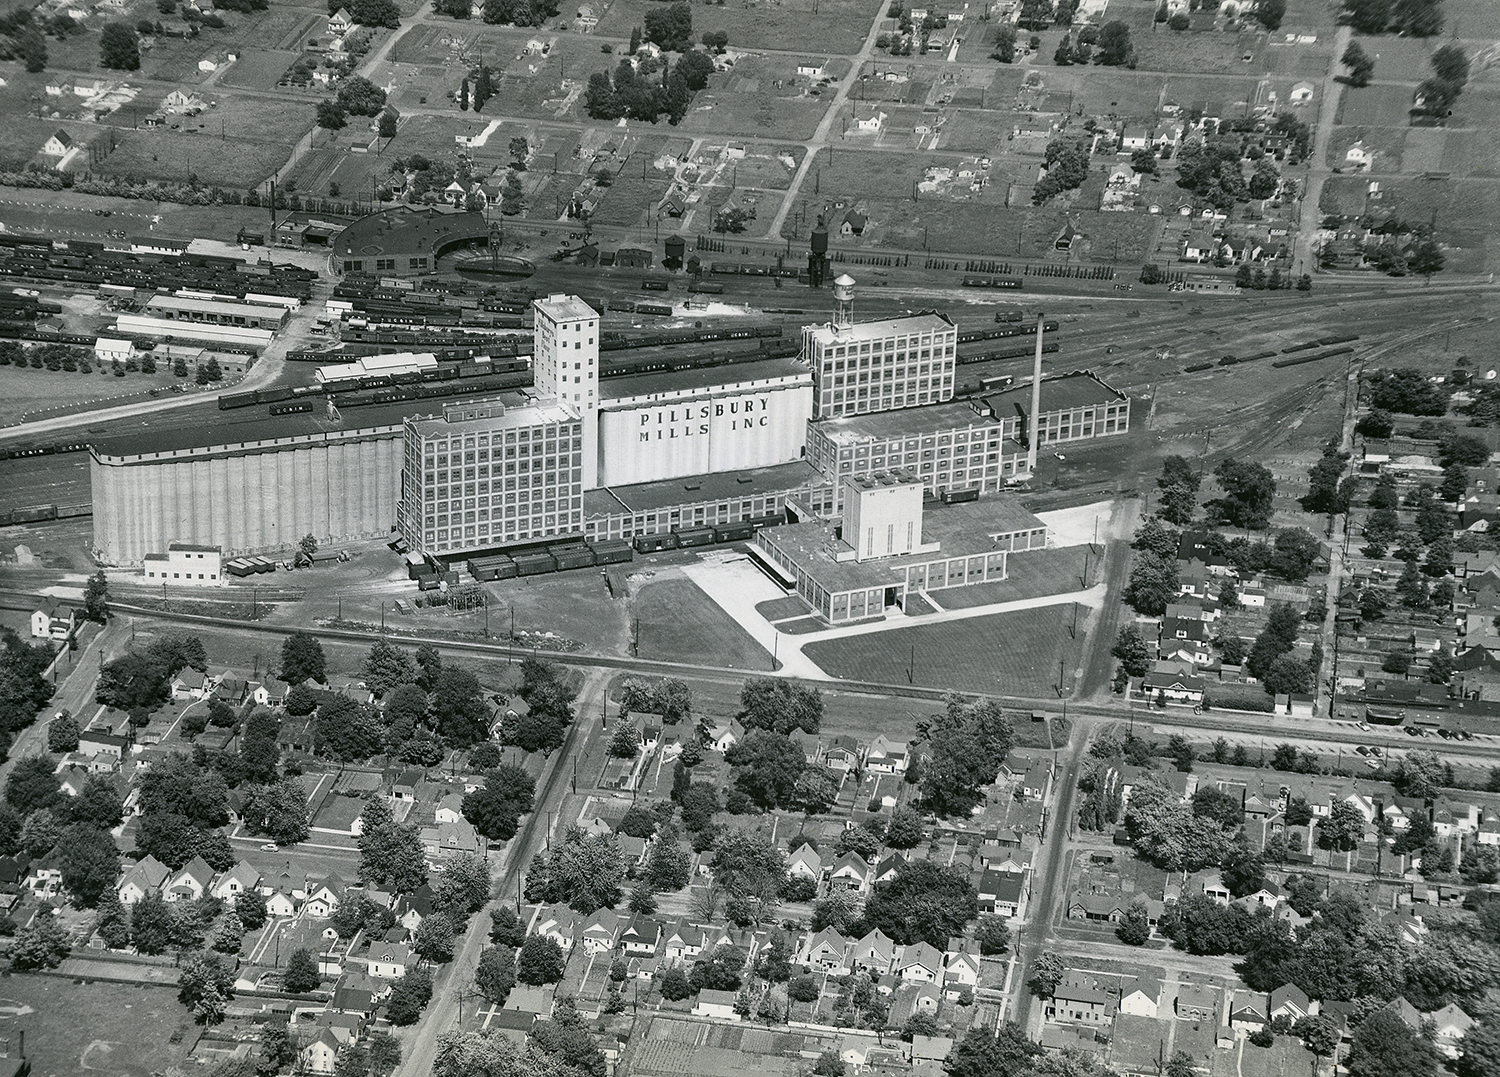 Pillsbury Mills aerial, July 1949. Photo shows new bakery mix plant, the smaller building in the corner of the triangle. Flour is fed through pneumatic tubes from across railroad tracks. Mercury Studios Collection/The Sangamon Valley Collection at Lincoln Library